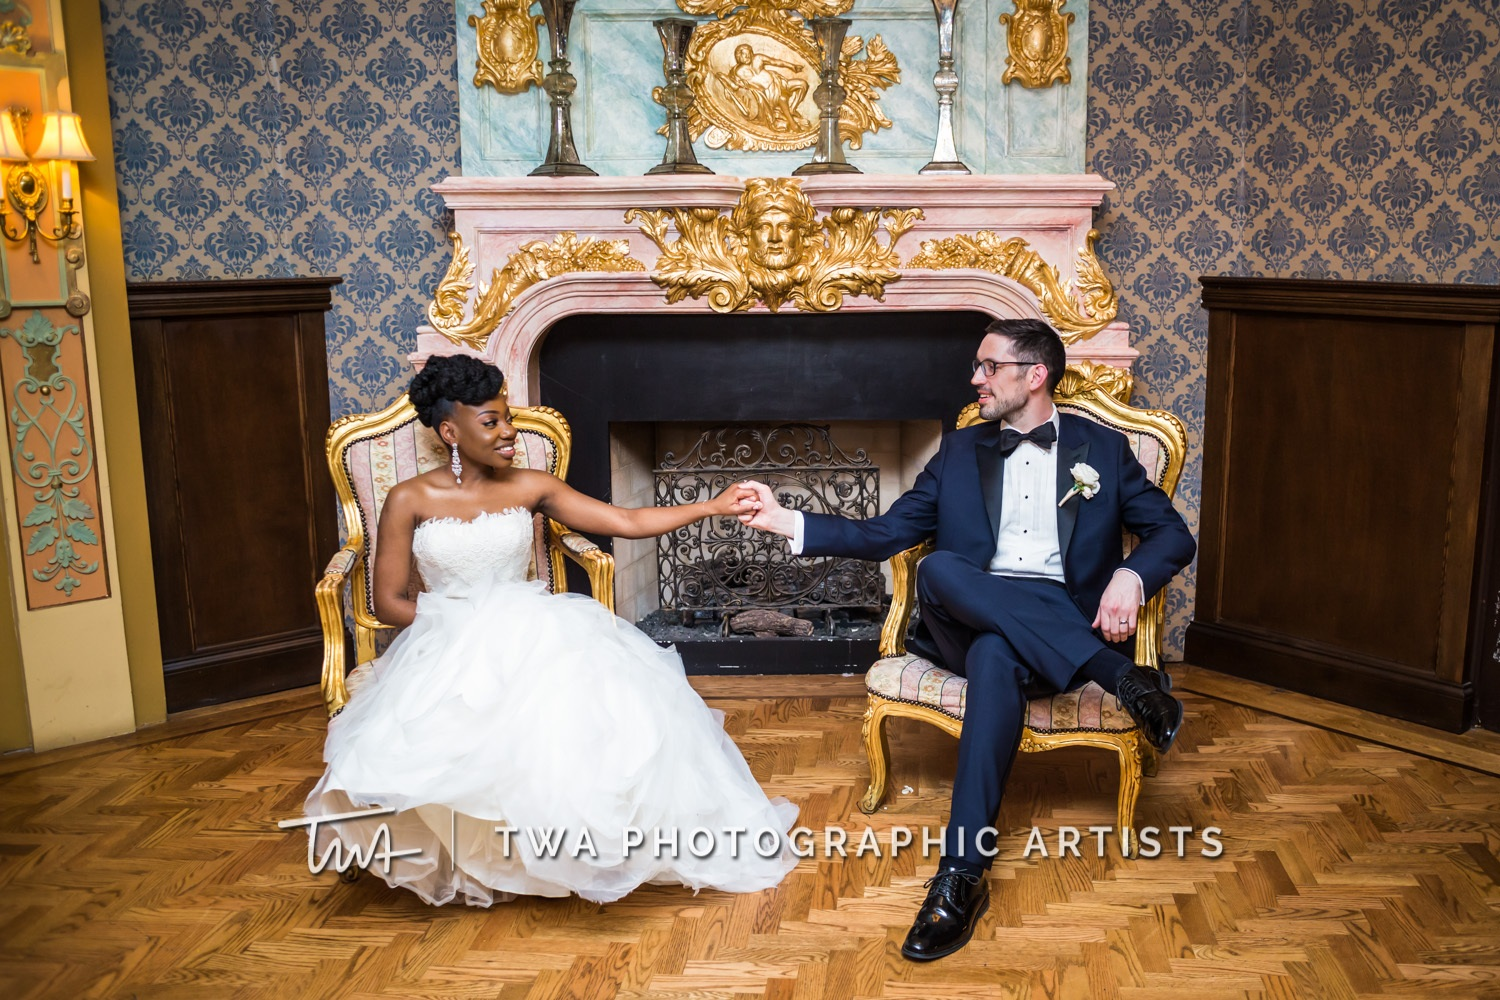 Chicago-Wedding-Photographer-TWA-Photographic-Artists-Stan-Mansion_Ityavyar_Oakley_MJ-0526-1